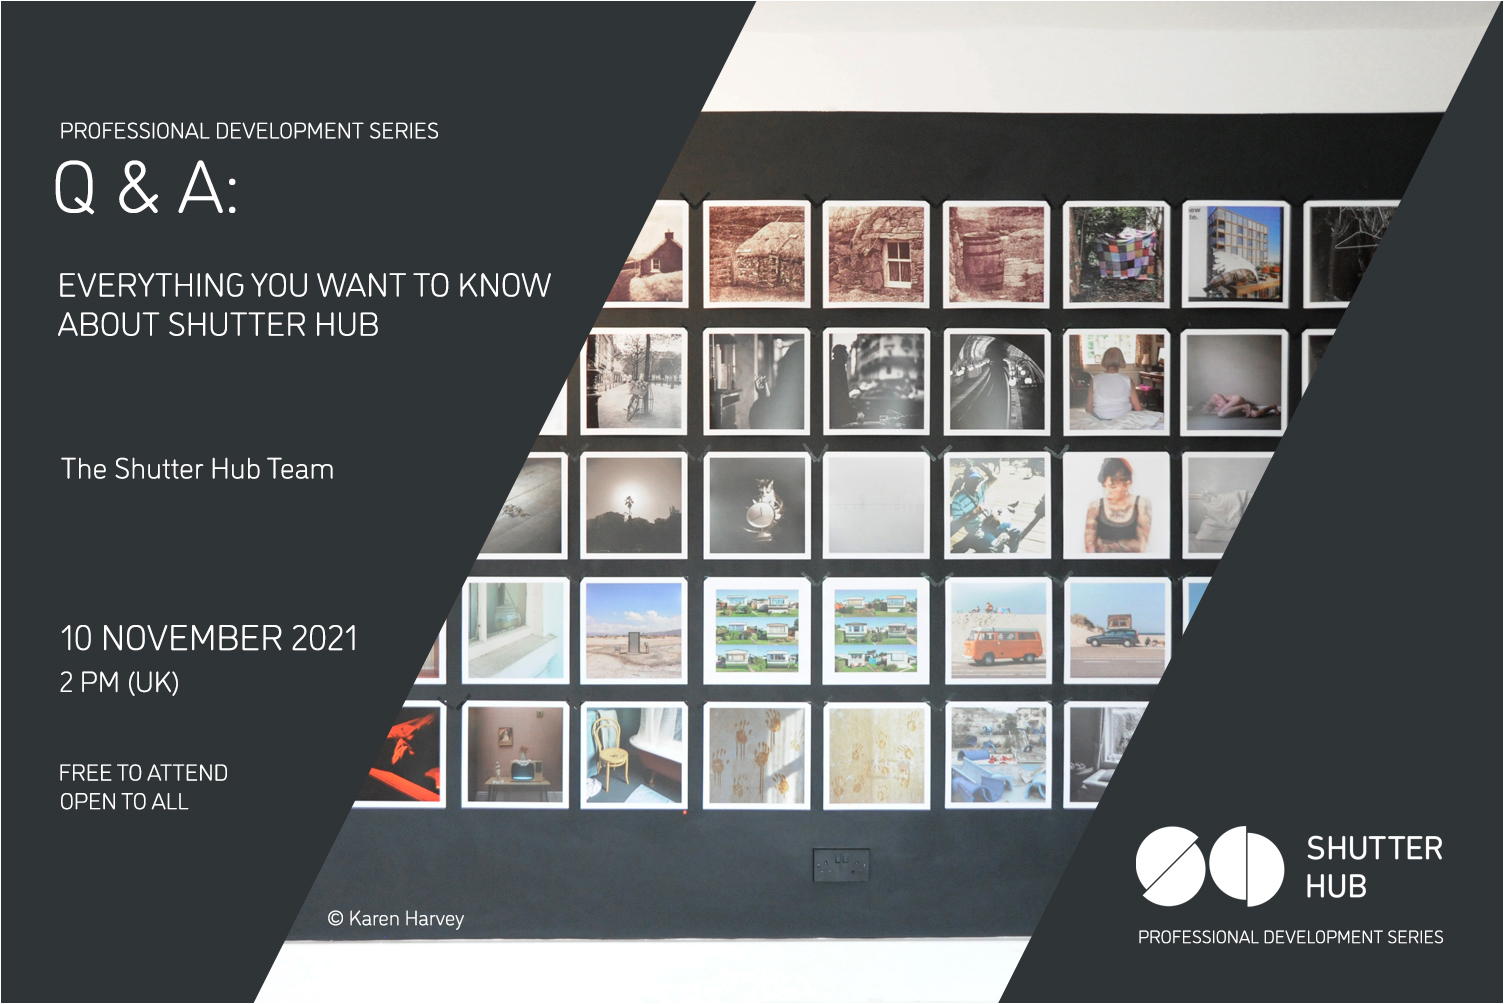 Graphic with the words 'Professional Development Series, Q&A: EVERYTHING YOU WANT TO KNOW ABOUT SHUTTER HUB, The Shutter Hub Team, 10 November 2021, 2pm (UK), Free to attend, open to all' photograph of square prints on a black wall, is shown, with '© Karen Harvey' below, and the Shutter Hub logo is at the bottom right with 'Professional Development Series' written below.